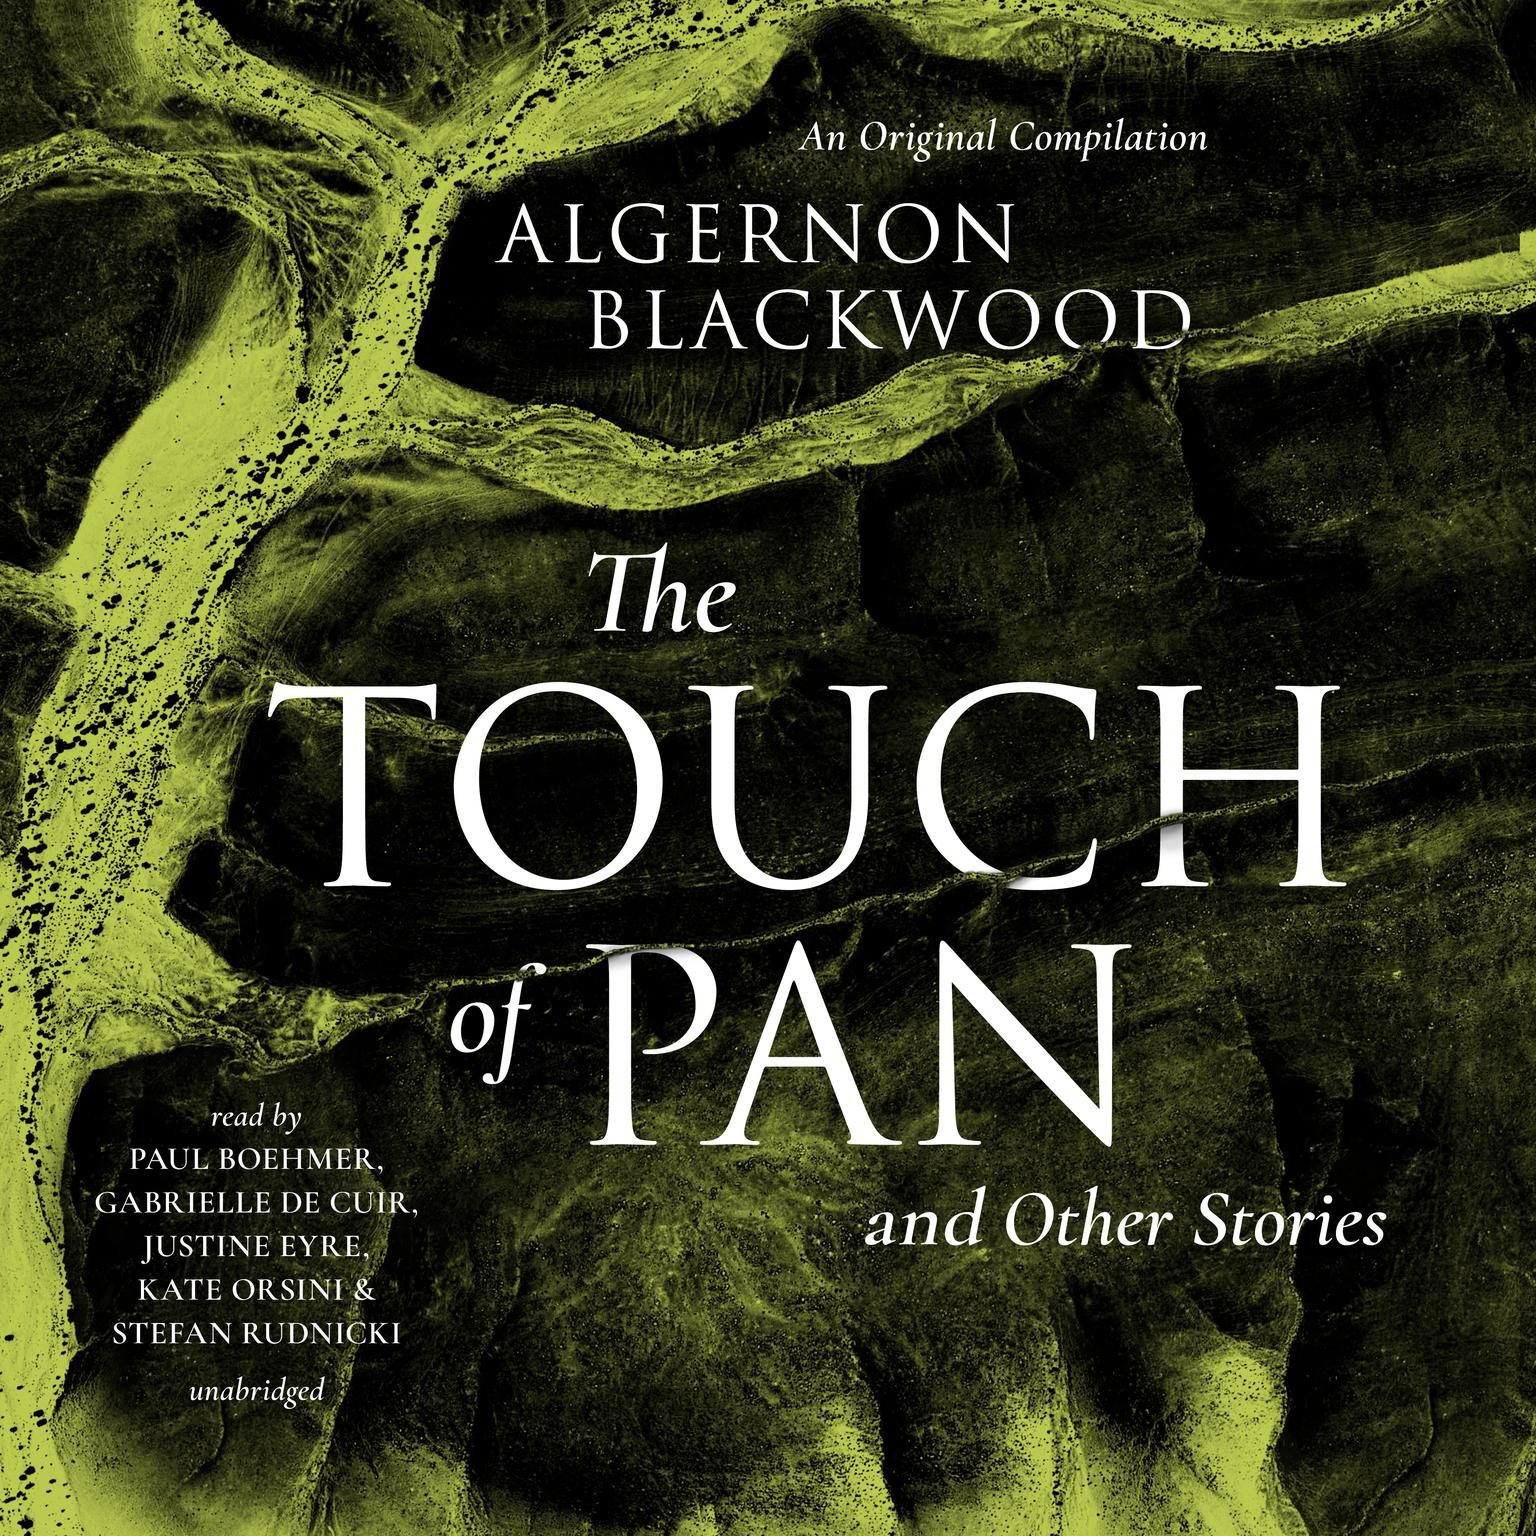 The Touch of Pan & Other Stories: An Original Compilation Audiobook, by Algernon Blackwood